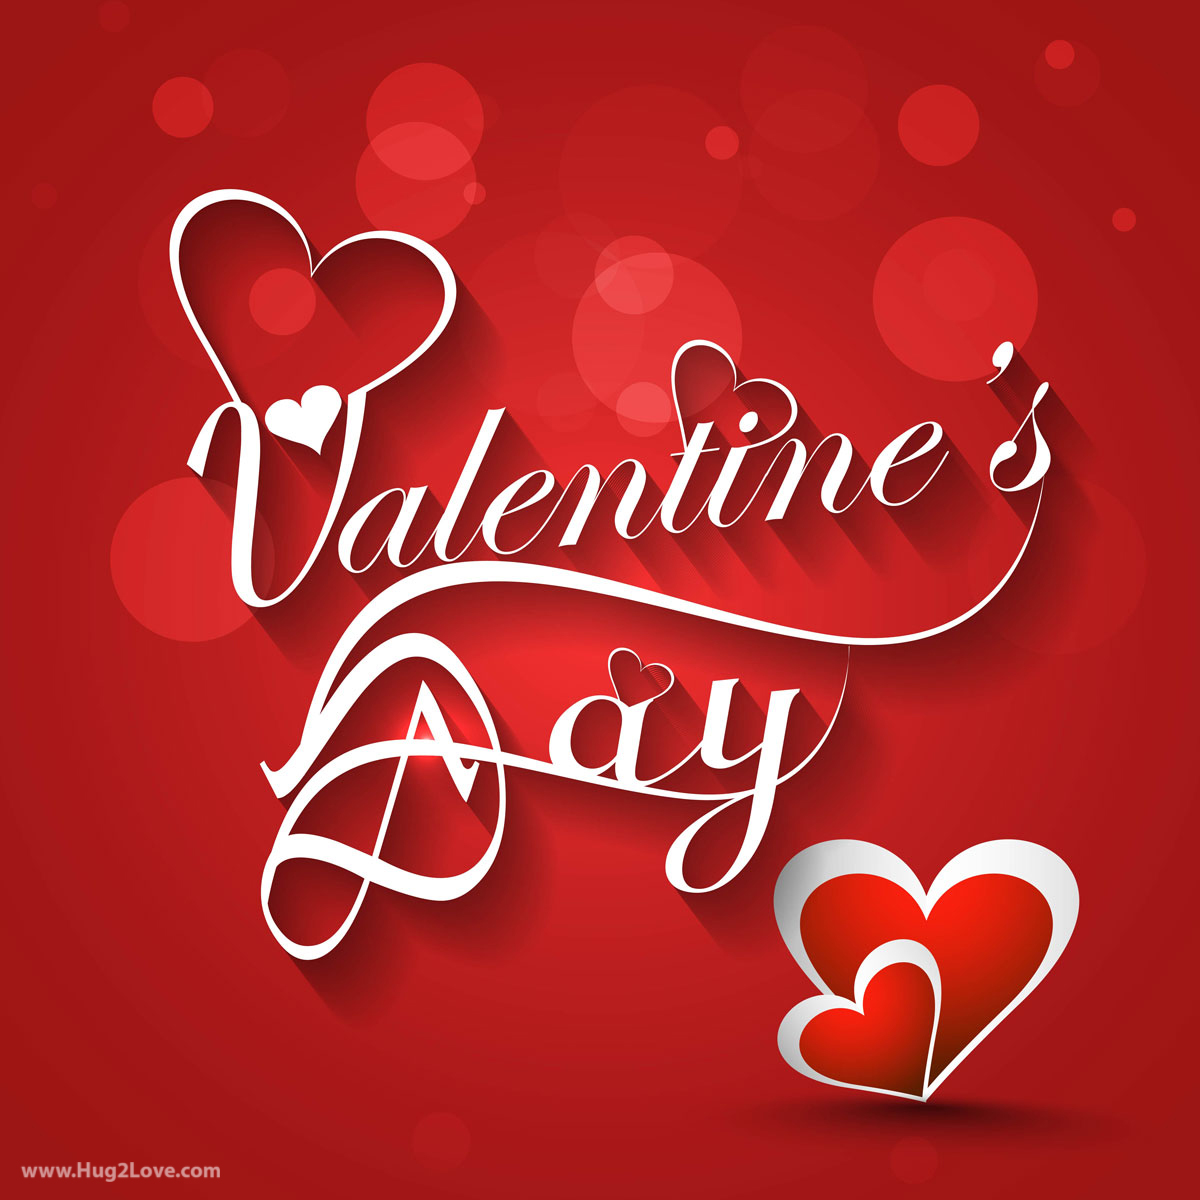 Hd Valentine Love Images   Romantic Valentine Day 2019 1200x1200